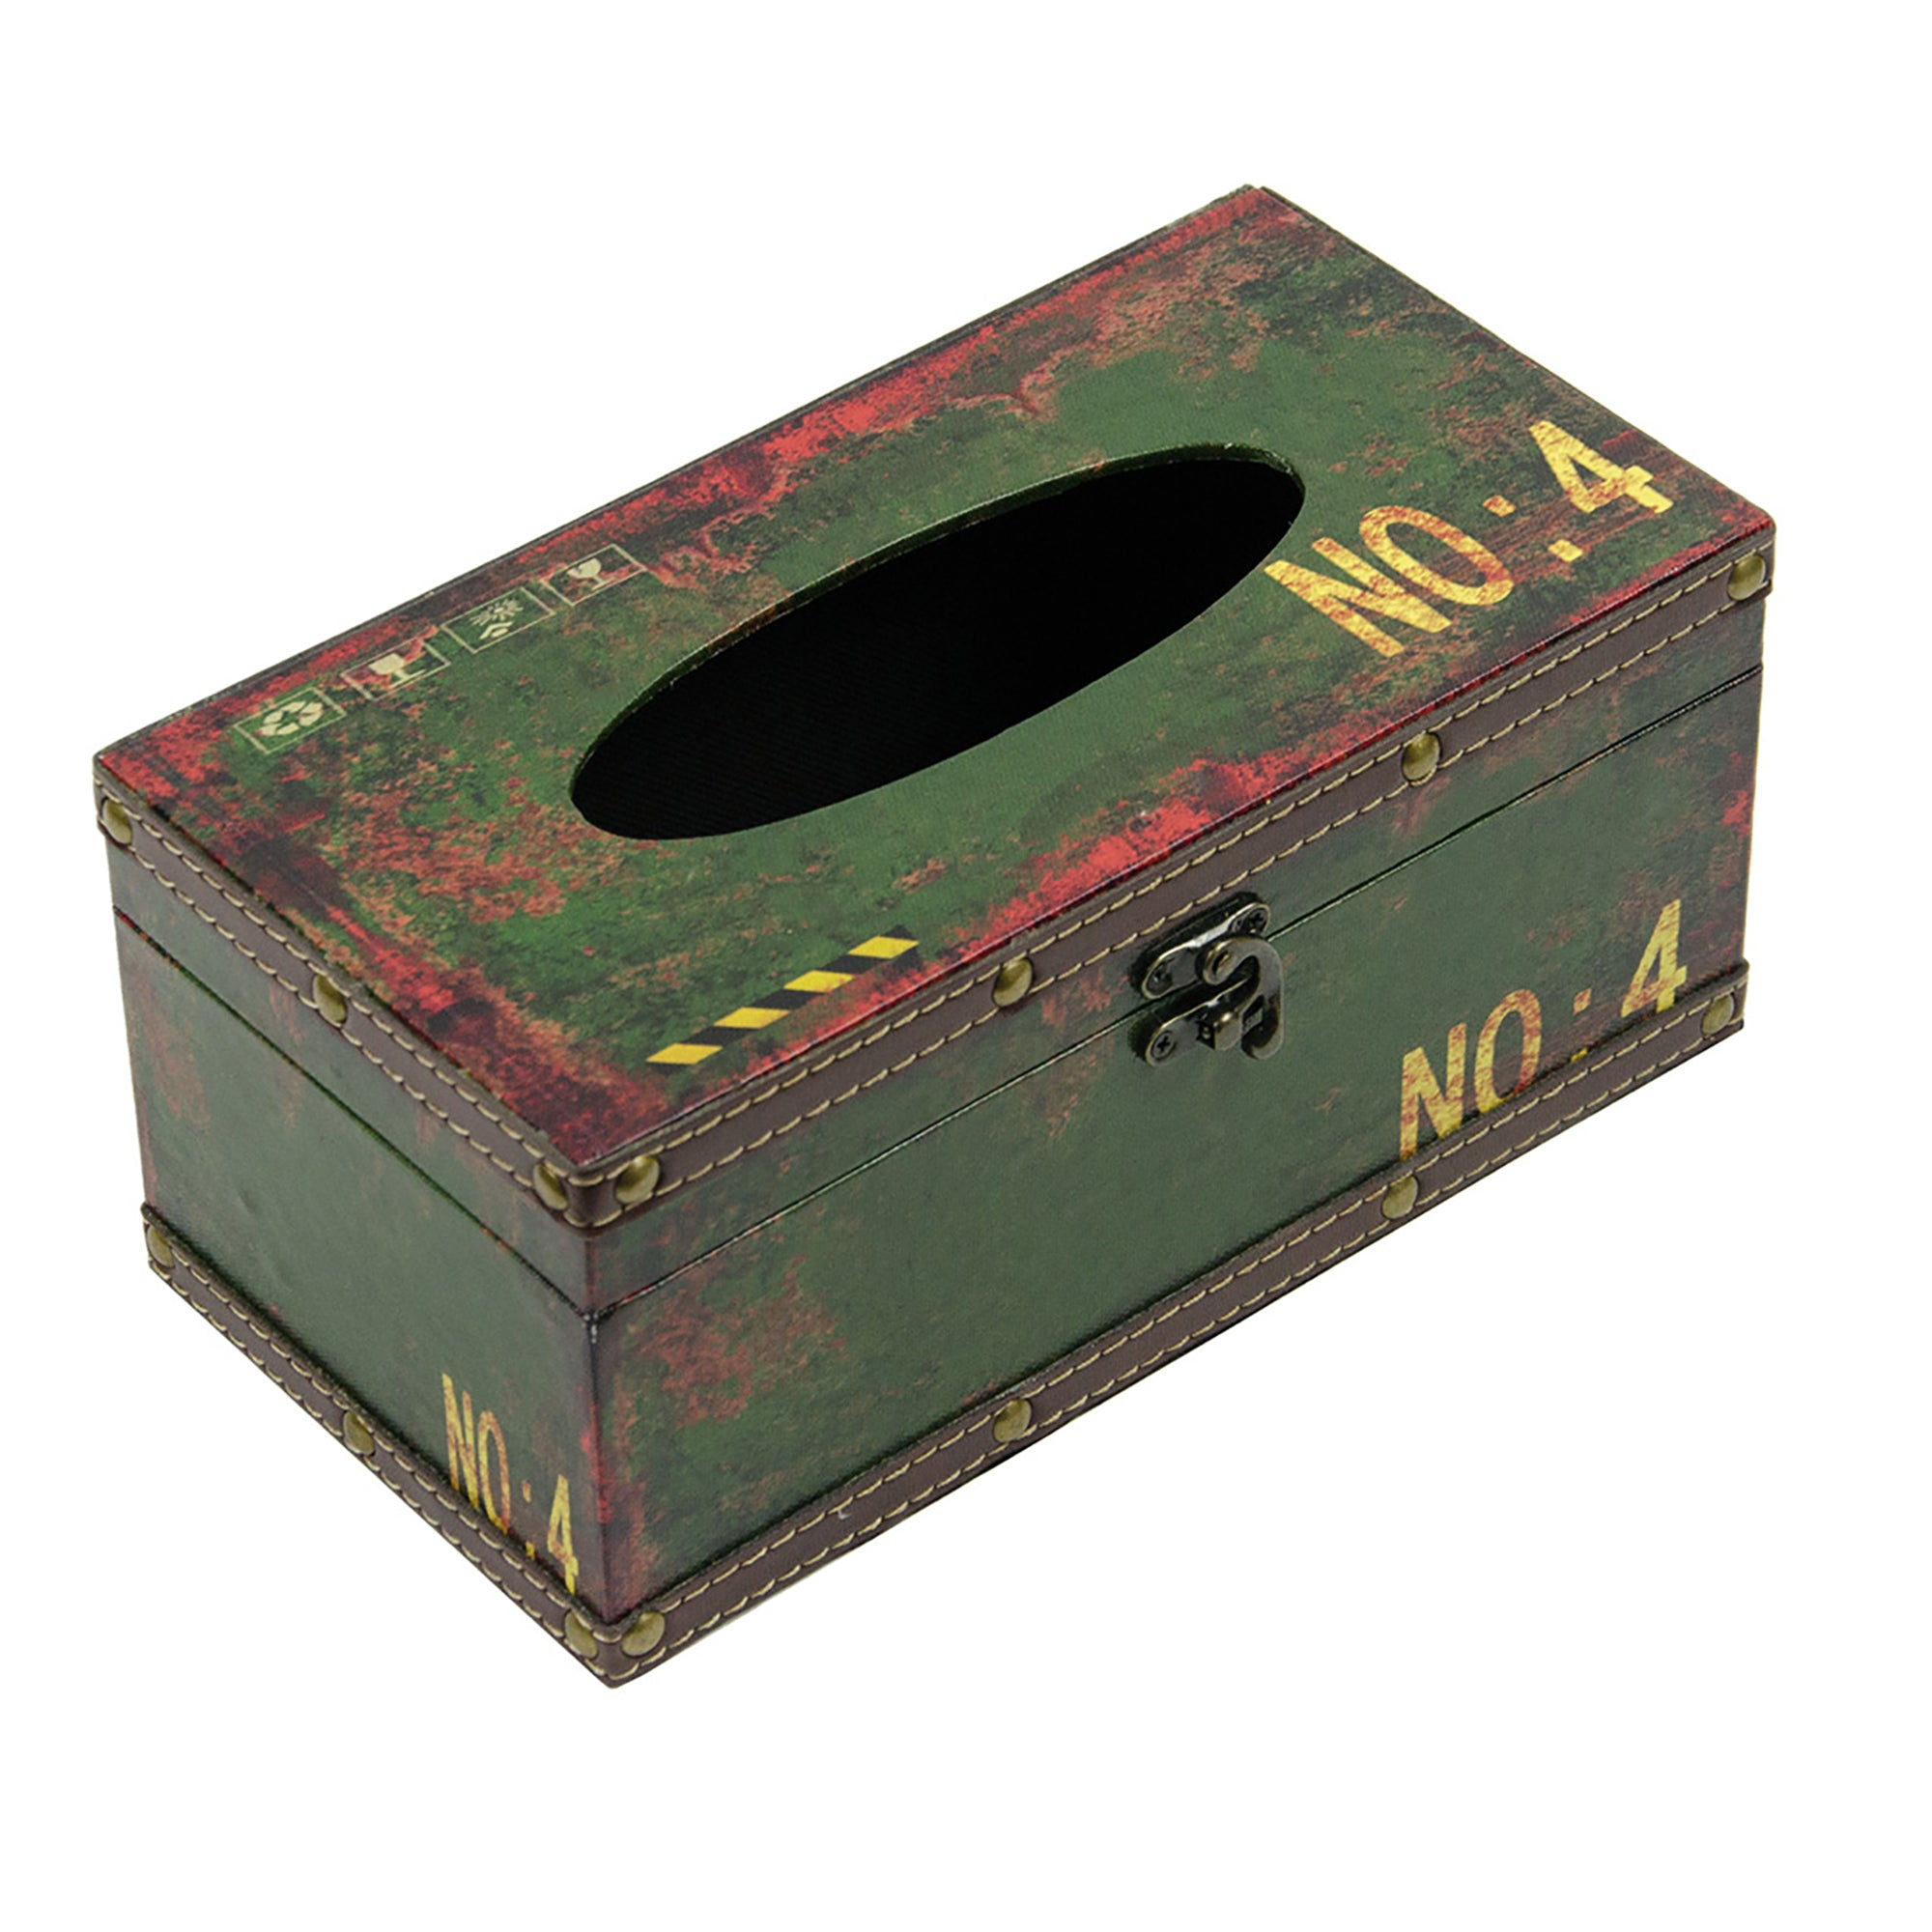 Retro Tissue Box - No. 4